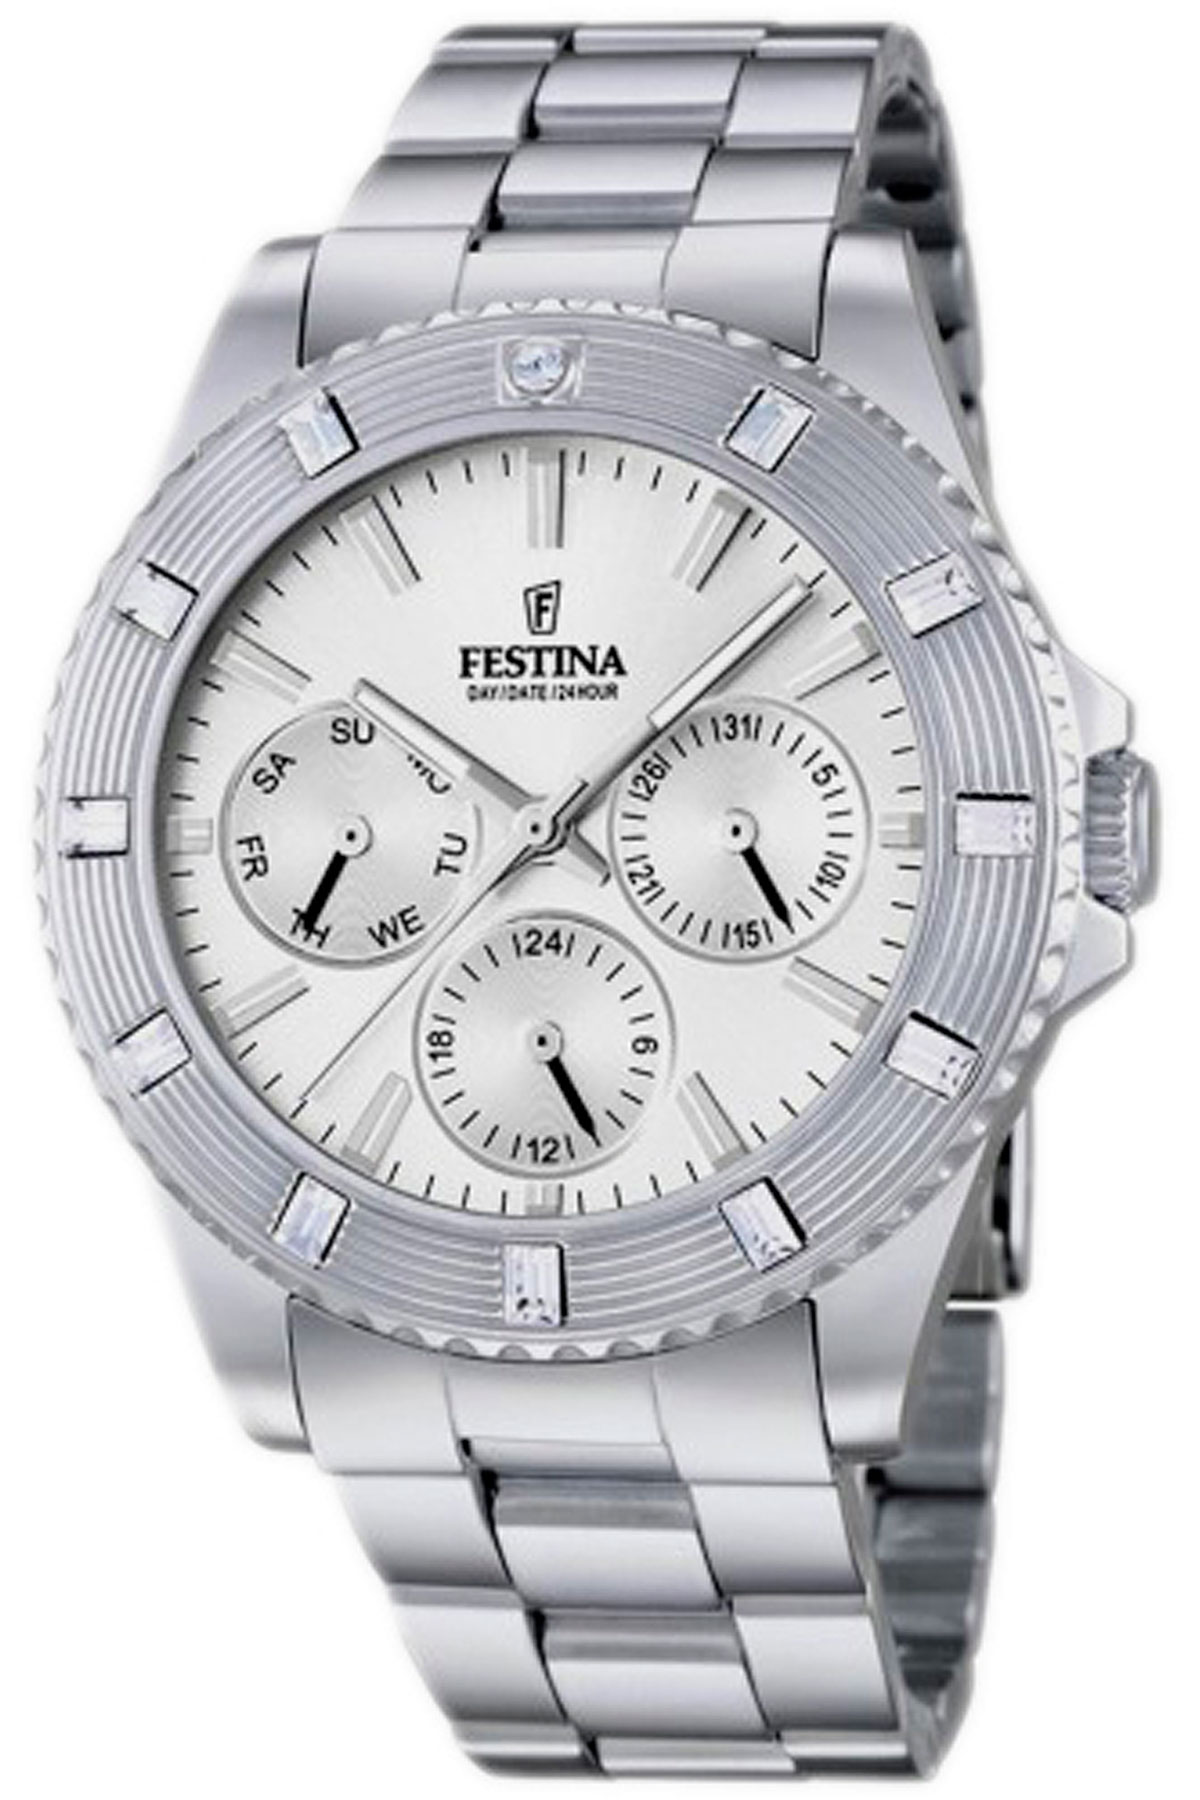 Festina_Watch_for_Women,_Silver,_Stainless_Steel,_2019